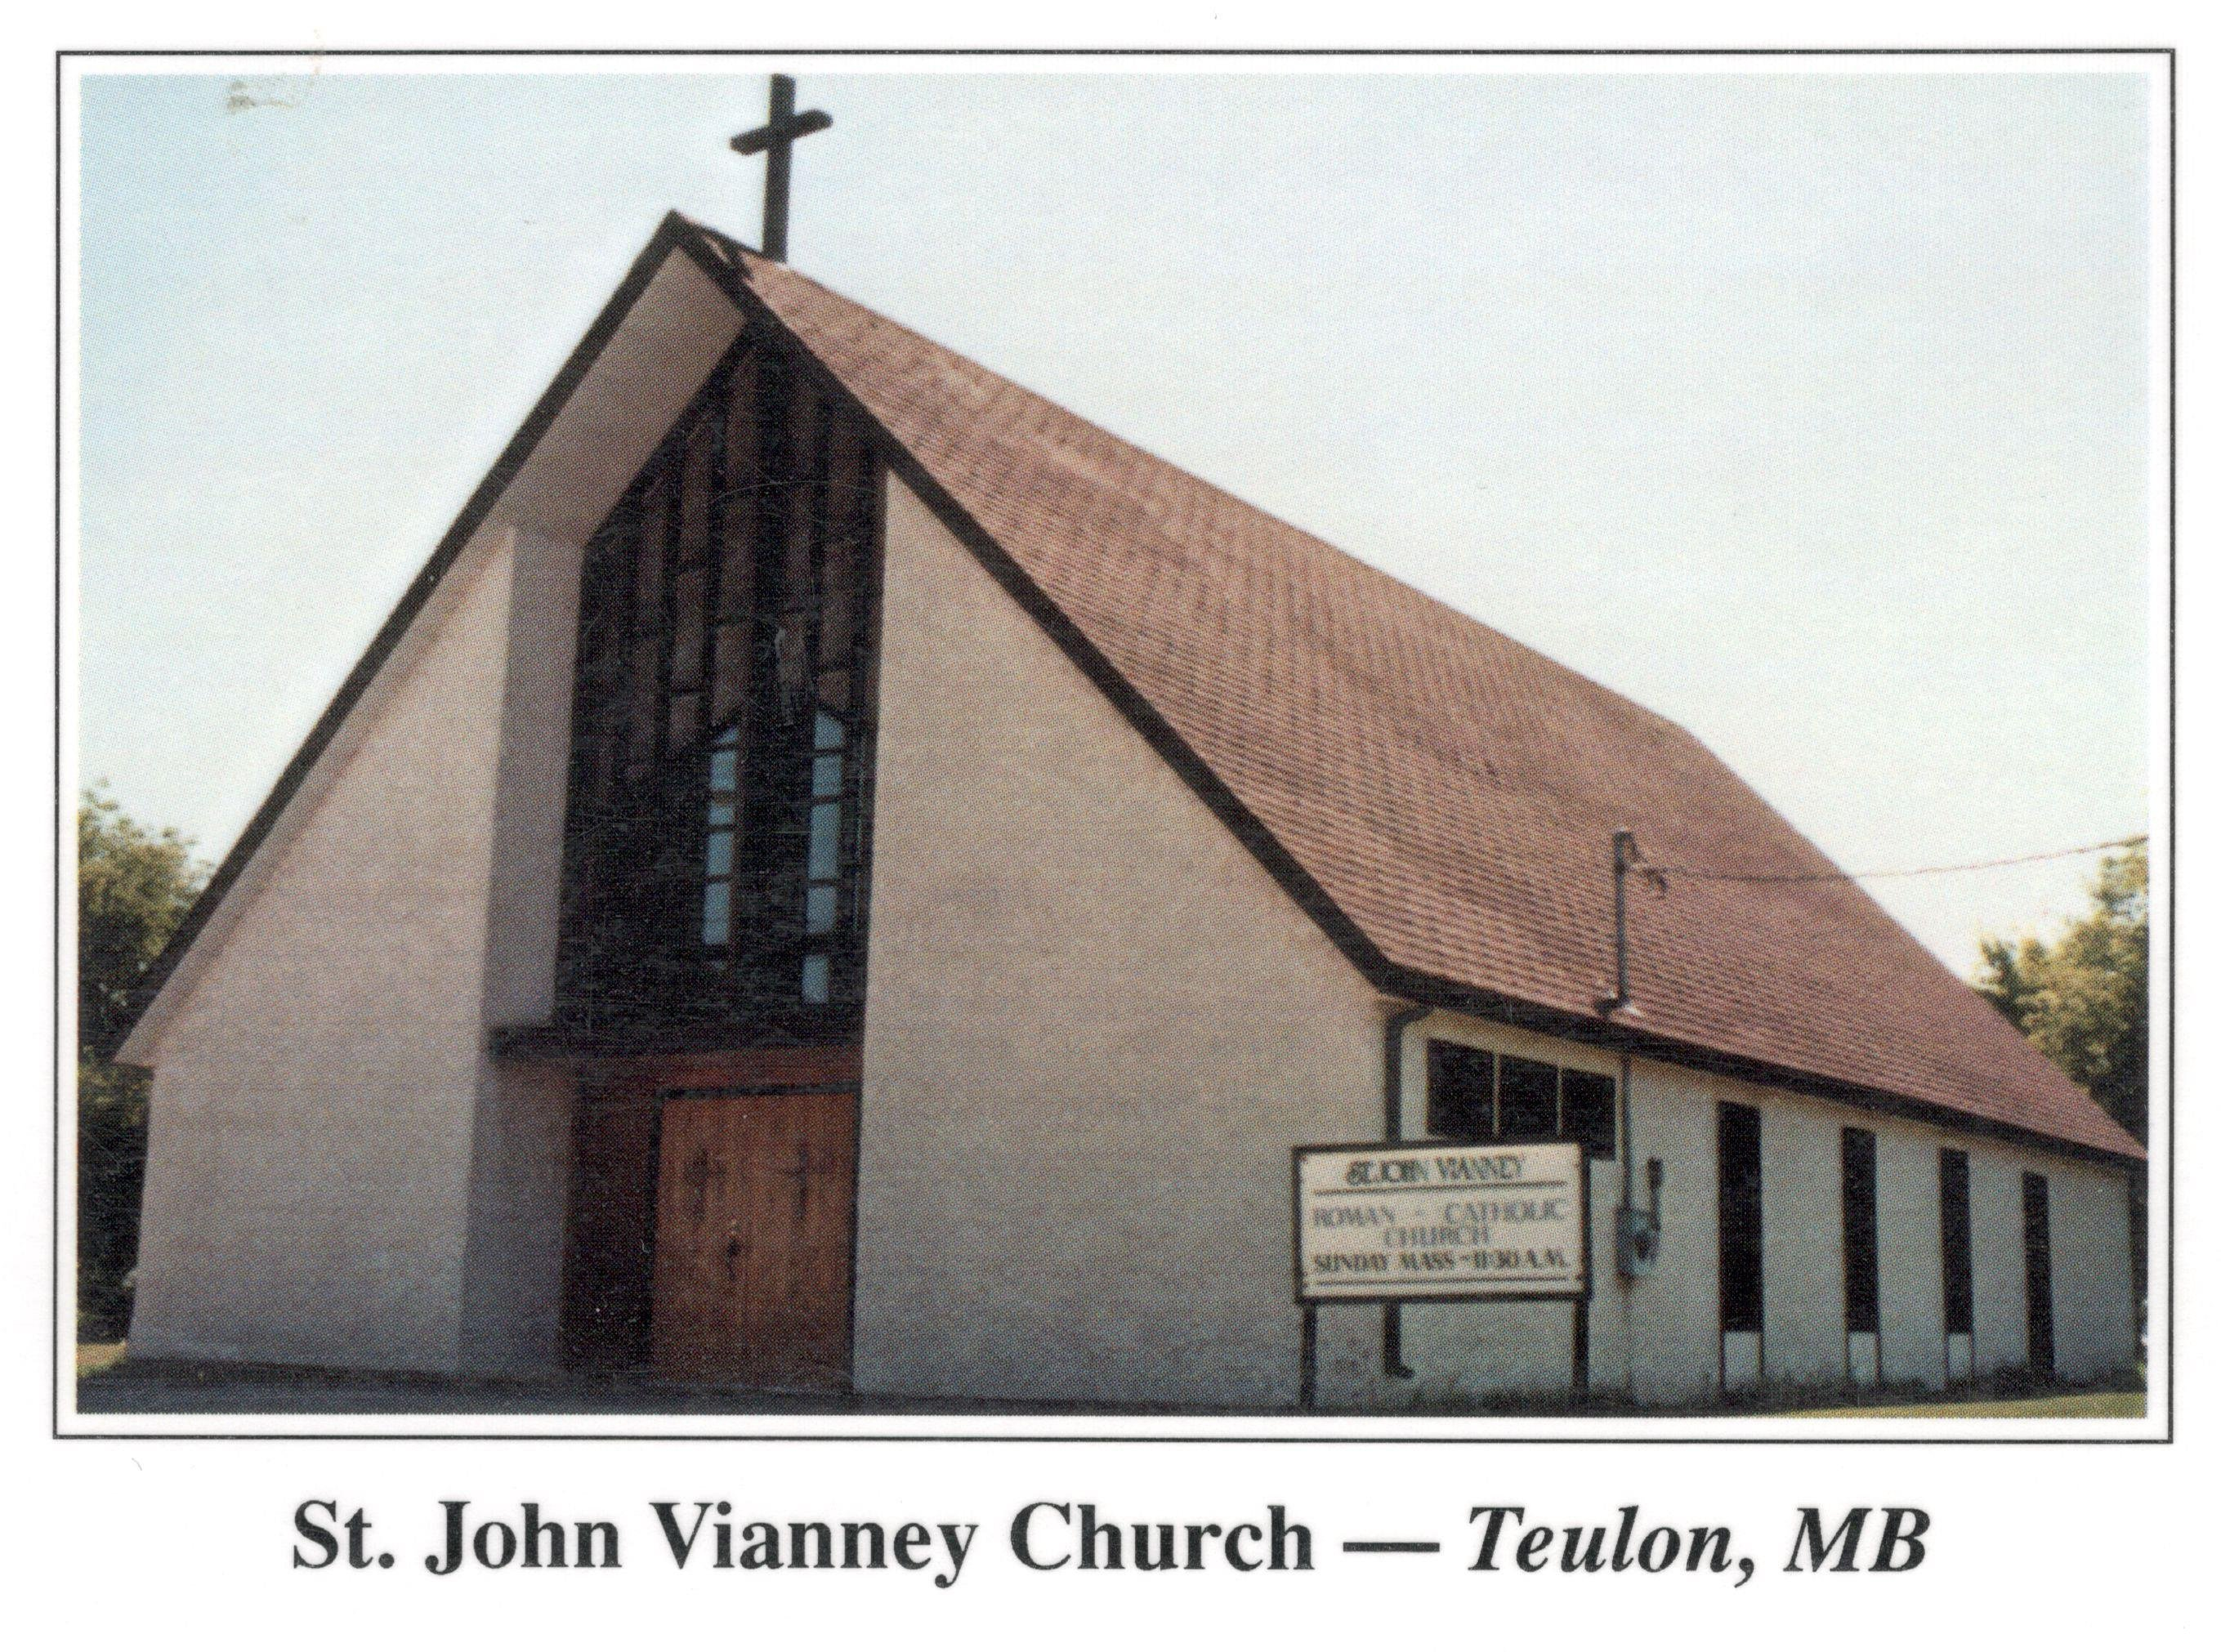 https://0901.nccdn.net/4_2/000/000/008/56a/St.-John-Vianney-Church-2718x2022.jpg